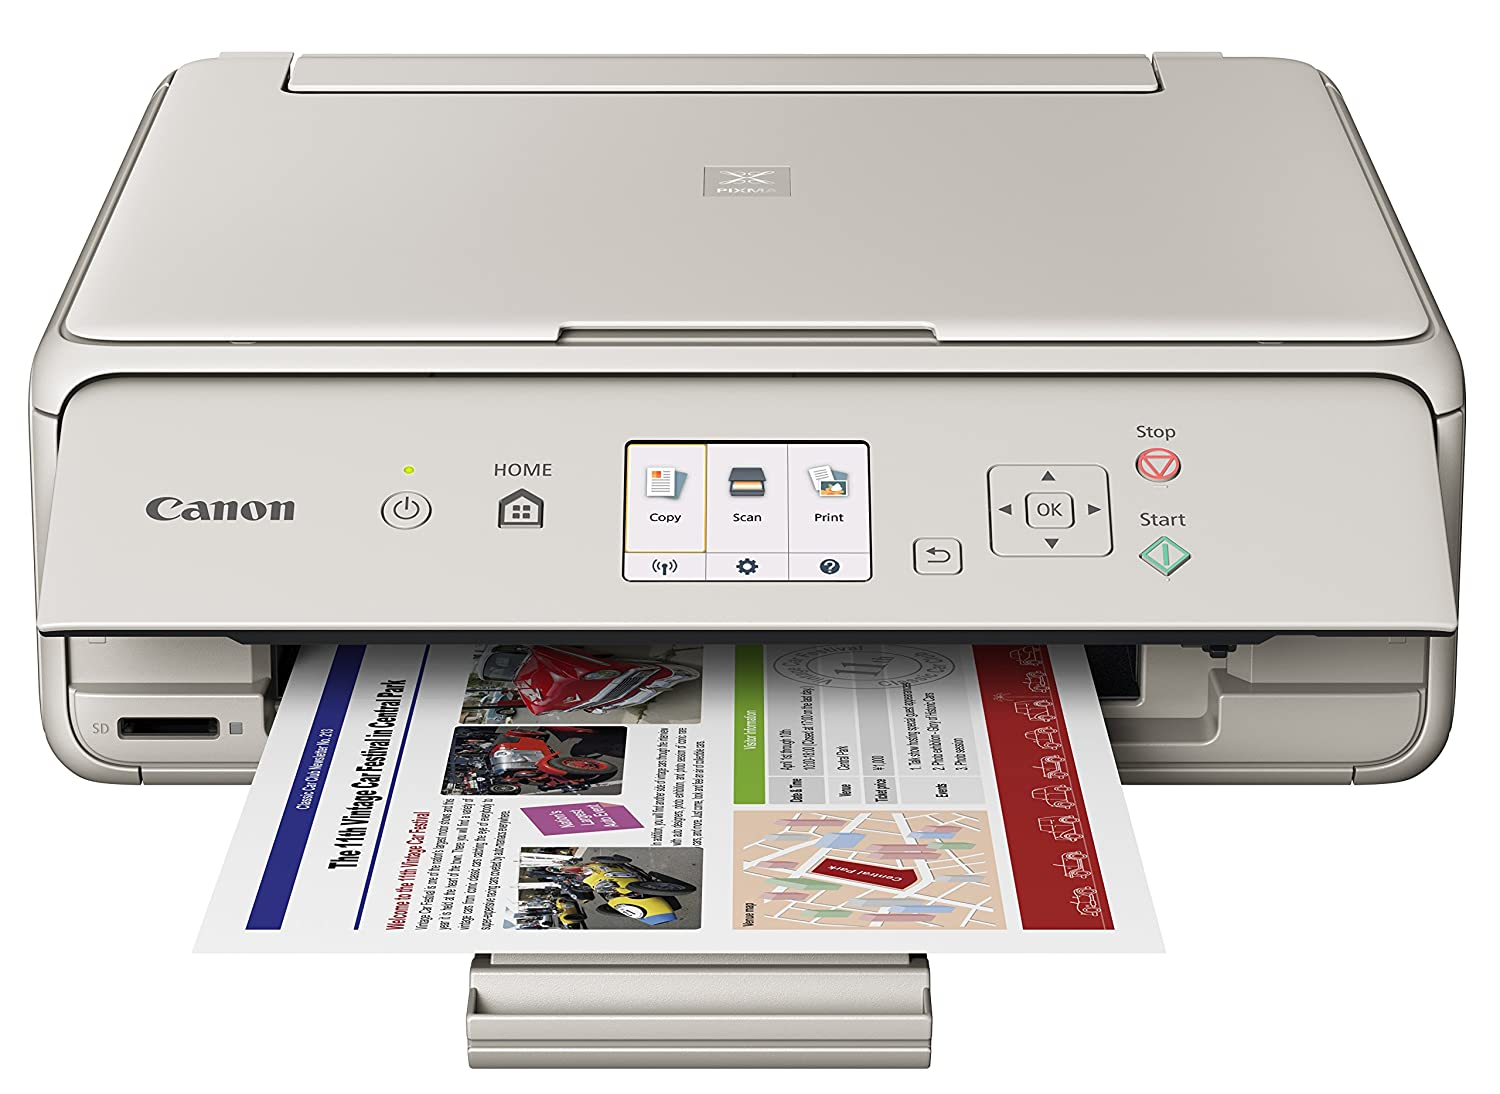 Canon Office Products PIXMA TS5020 WH Wireless color Photo Printer with Scanner & Copier, White Canon USA Inc.